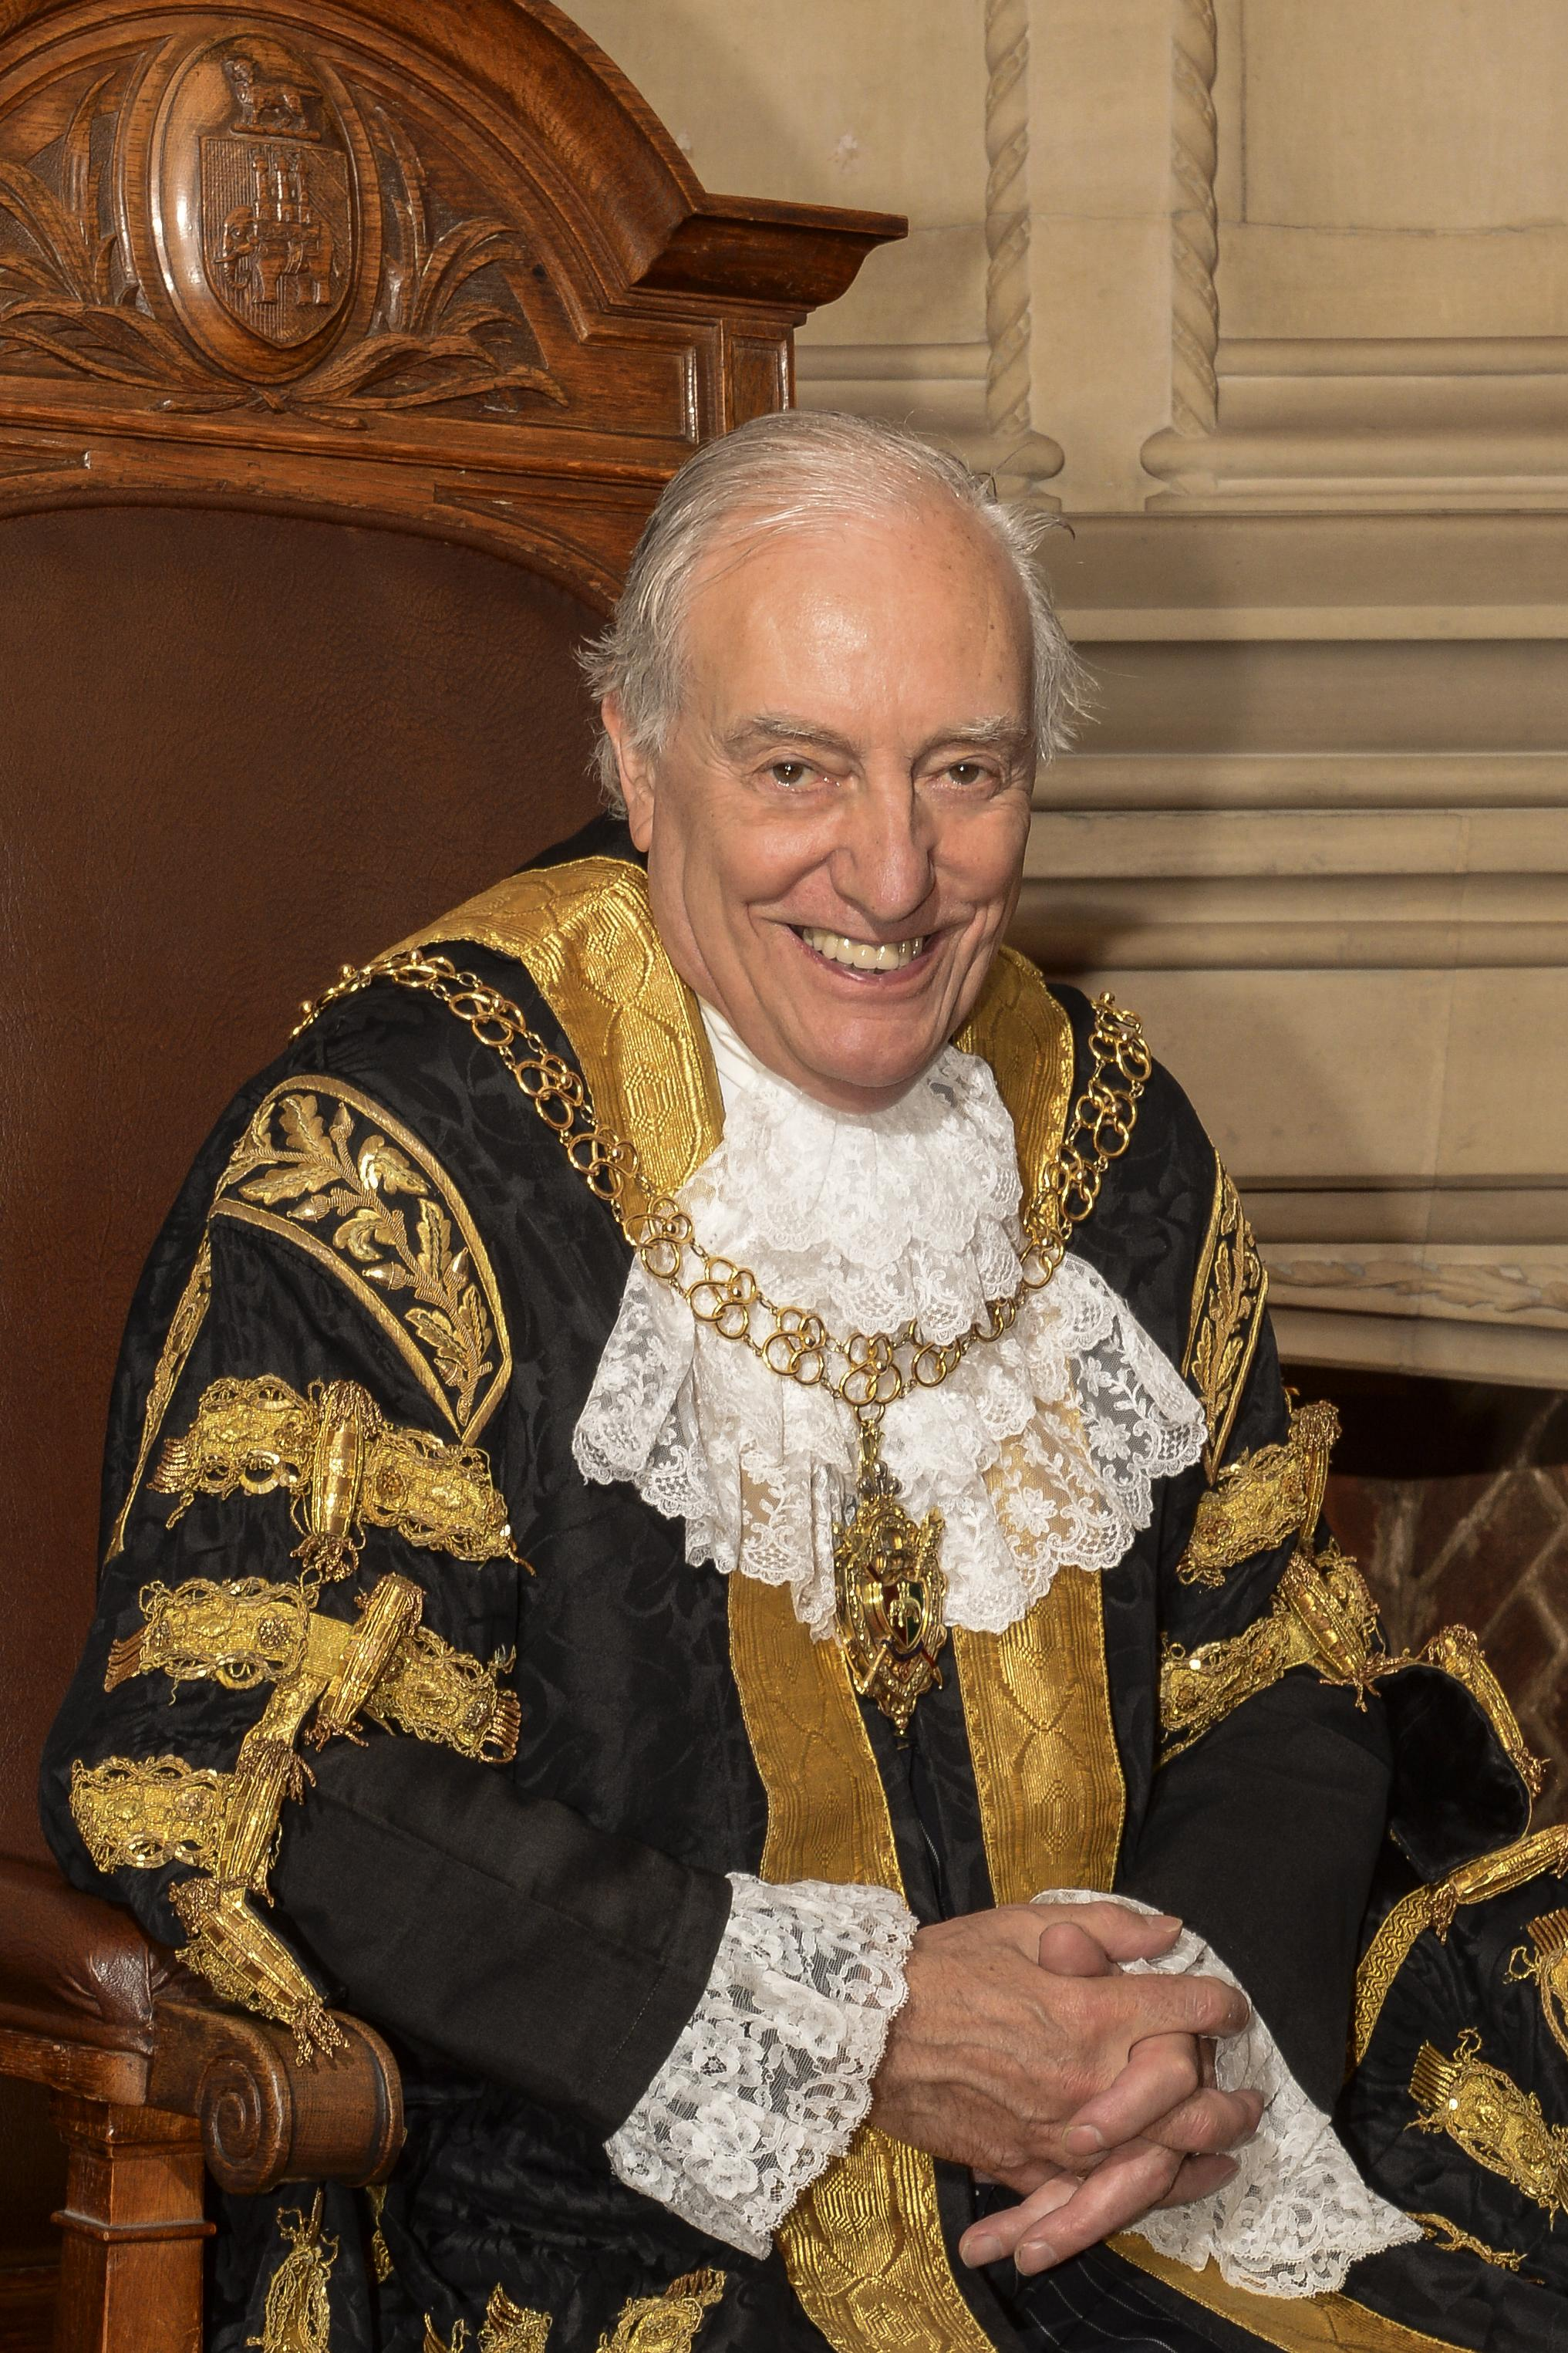 Lord Mayor Cllr Tony Skipper